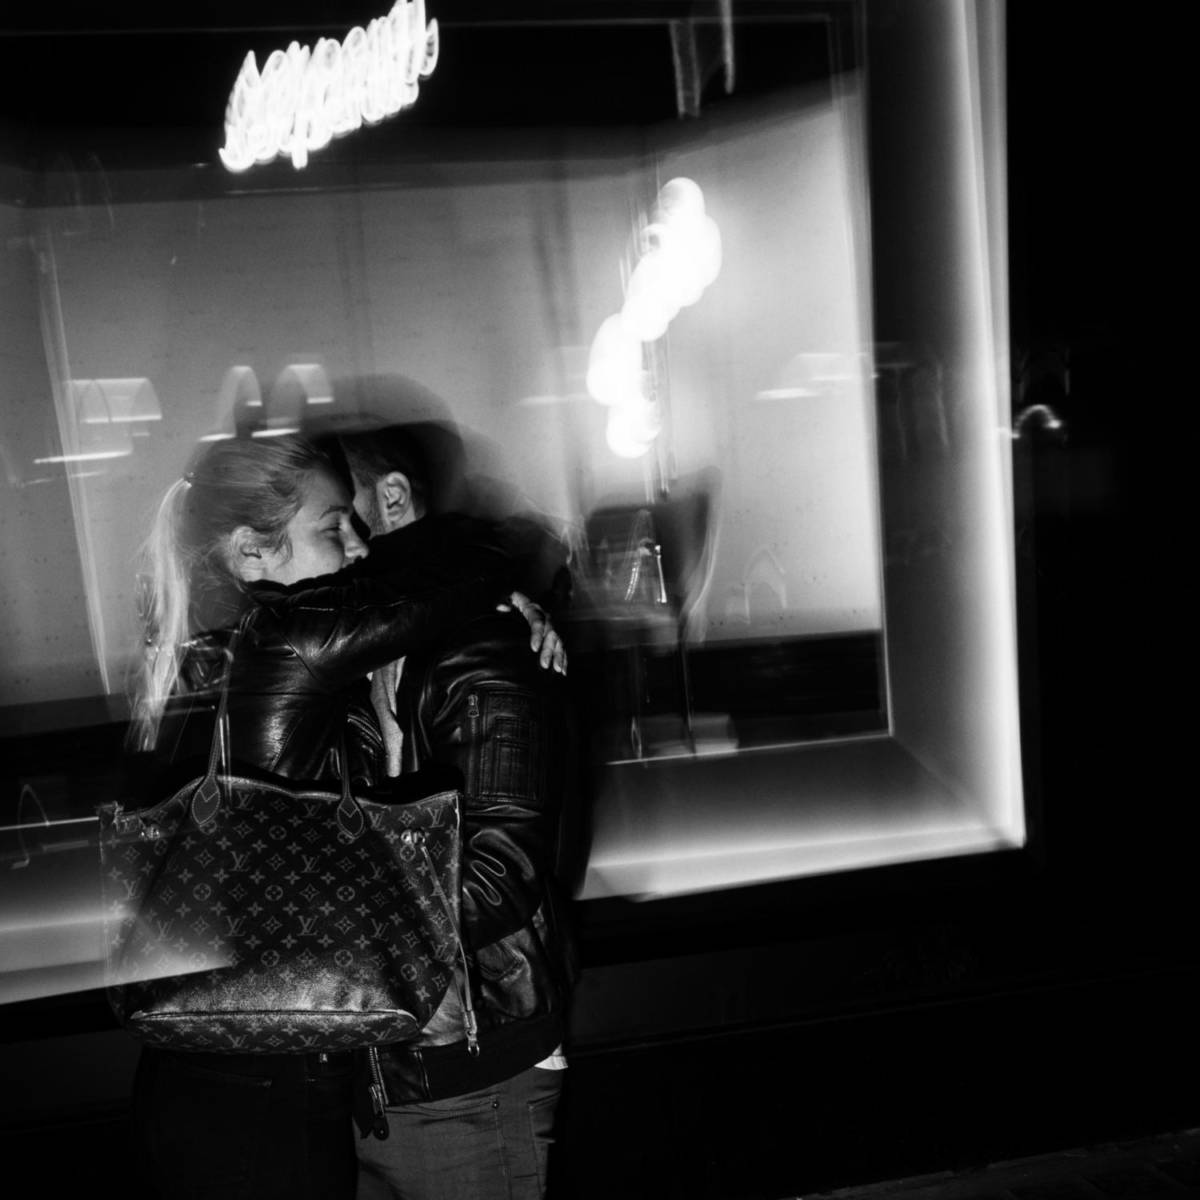 Street Photography Projects - In Front of KaDeWe